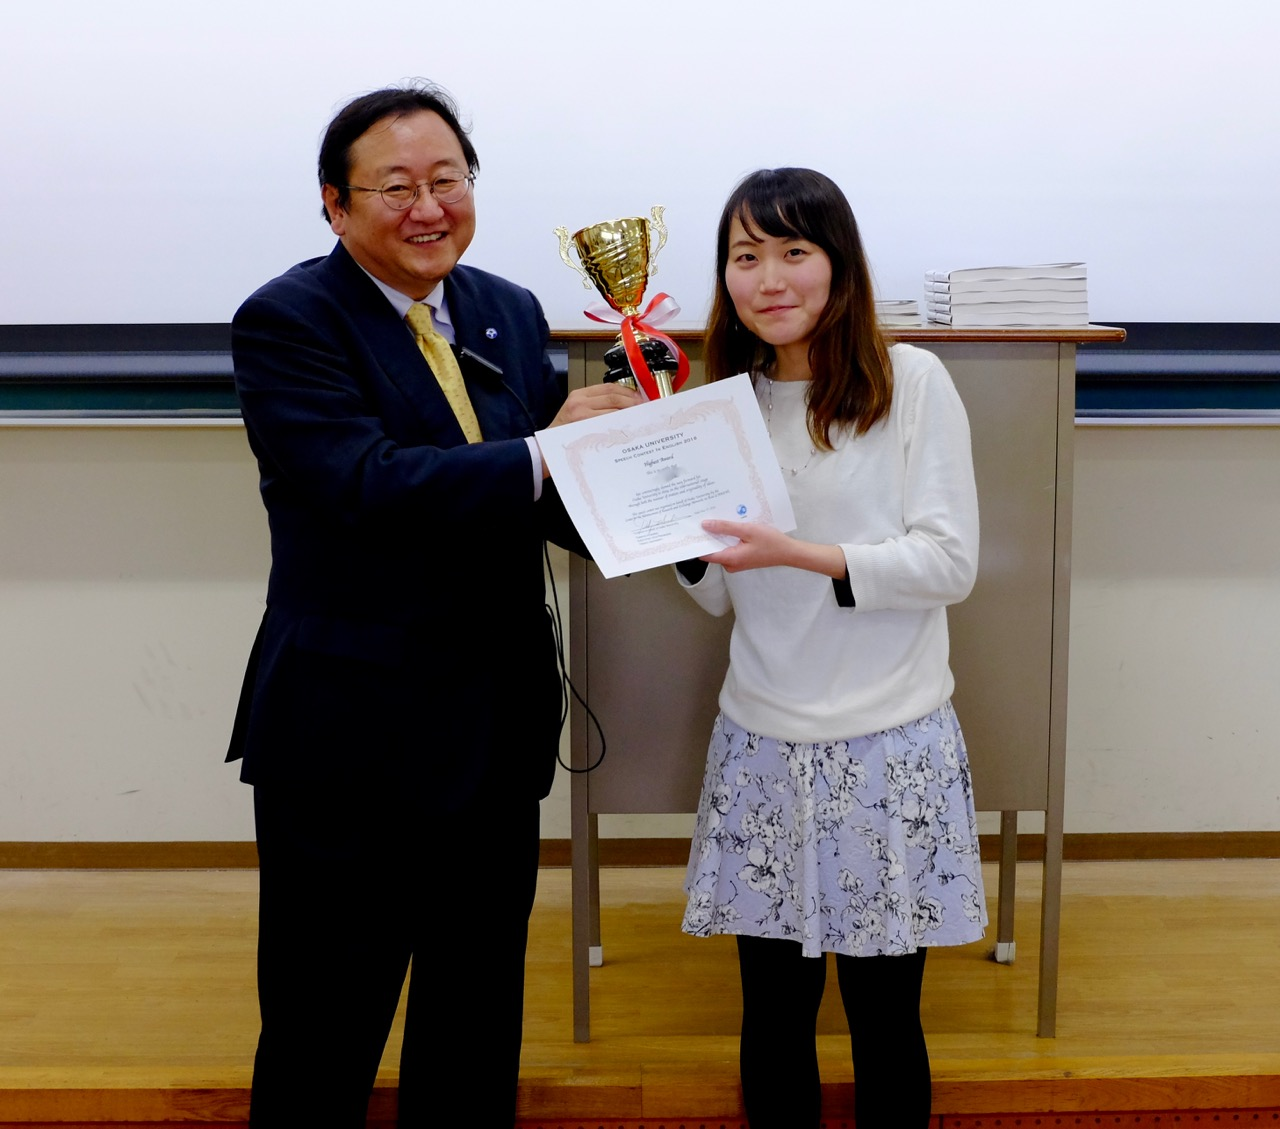 Miss Nana Chishima, being presented with the Highest Award by Professor Hoshino, Osaka University's  Executive Vice President.